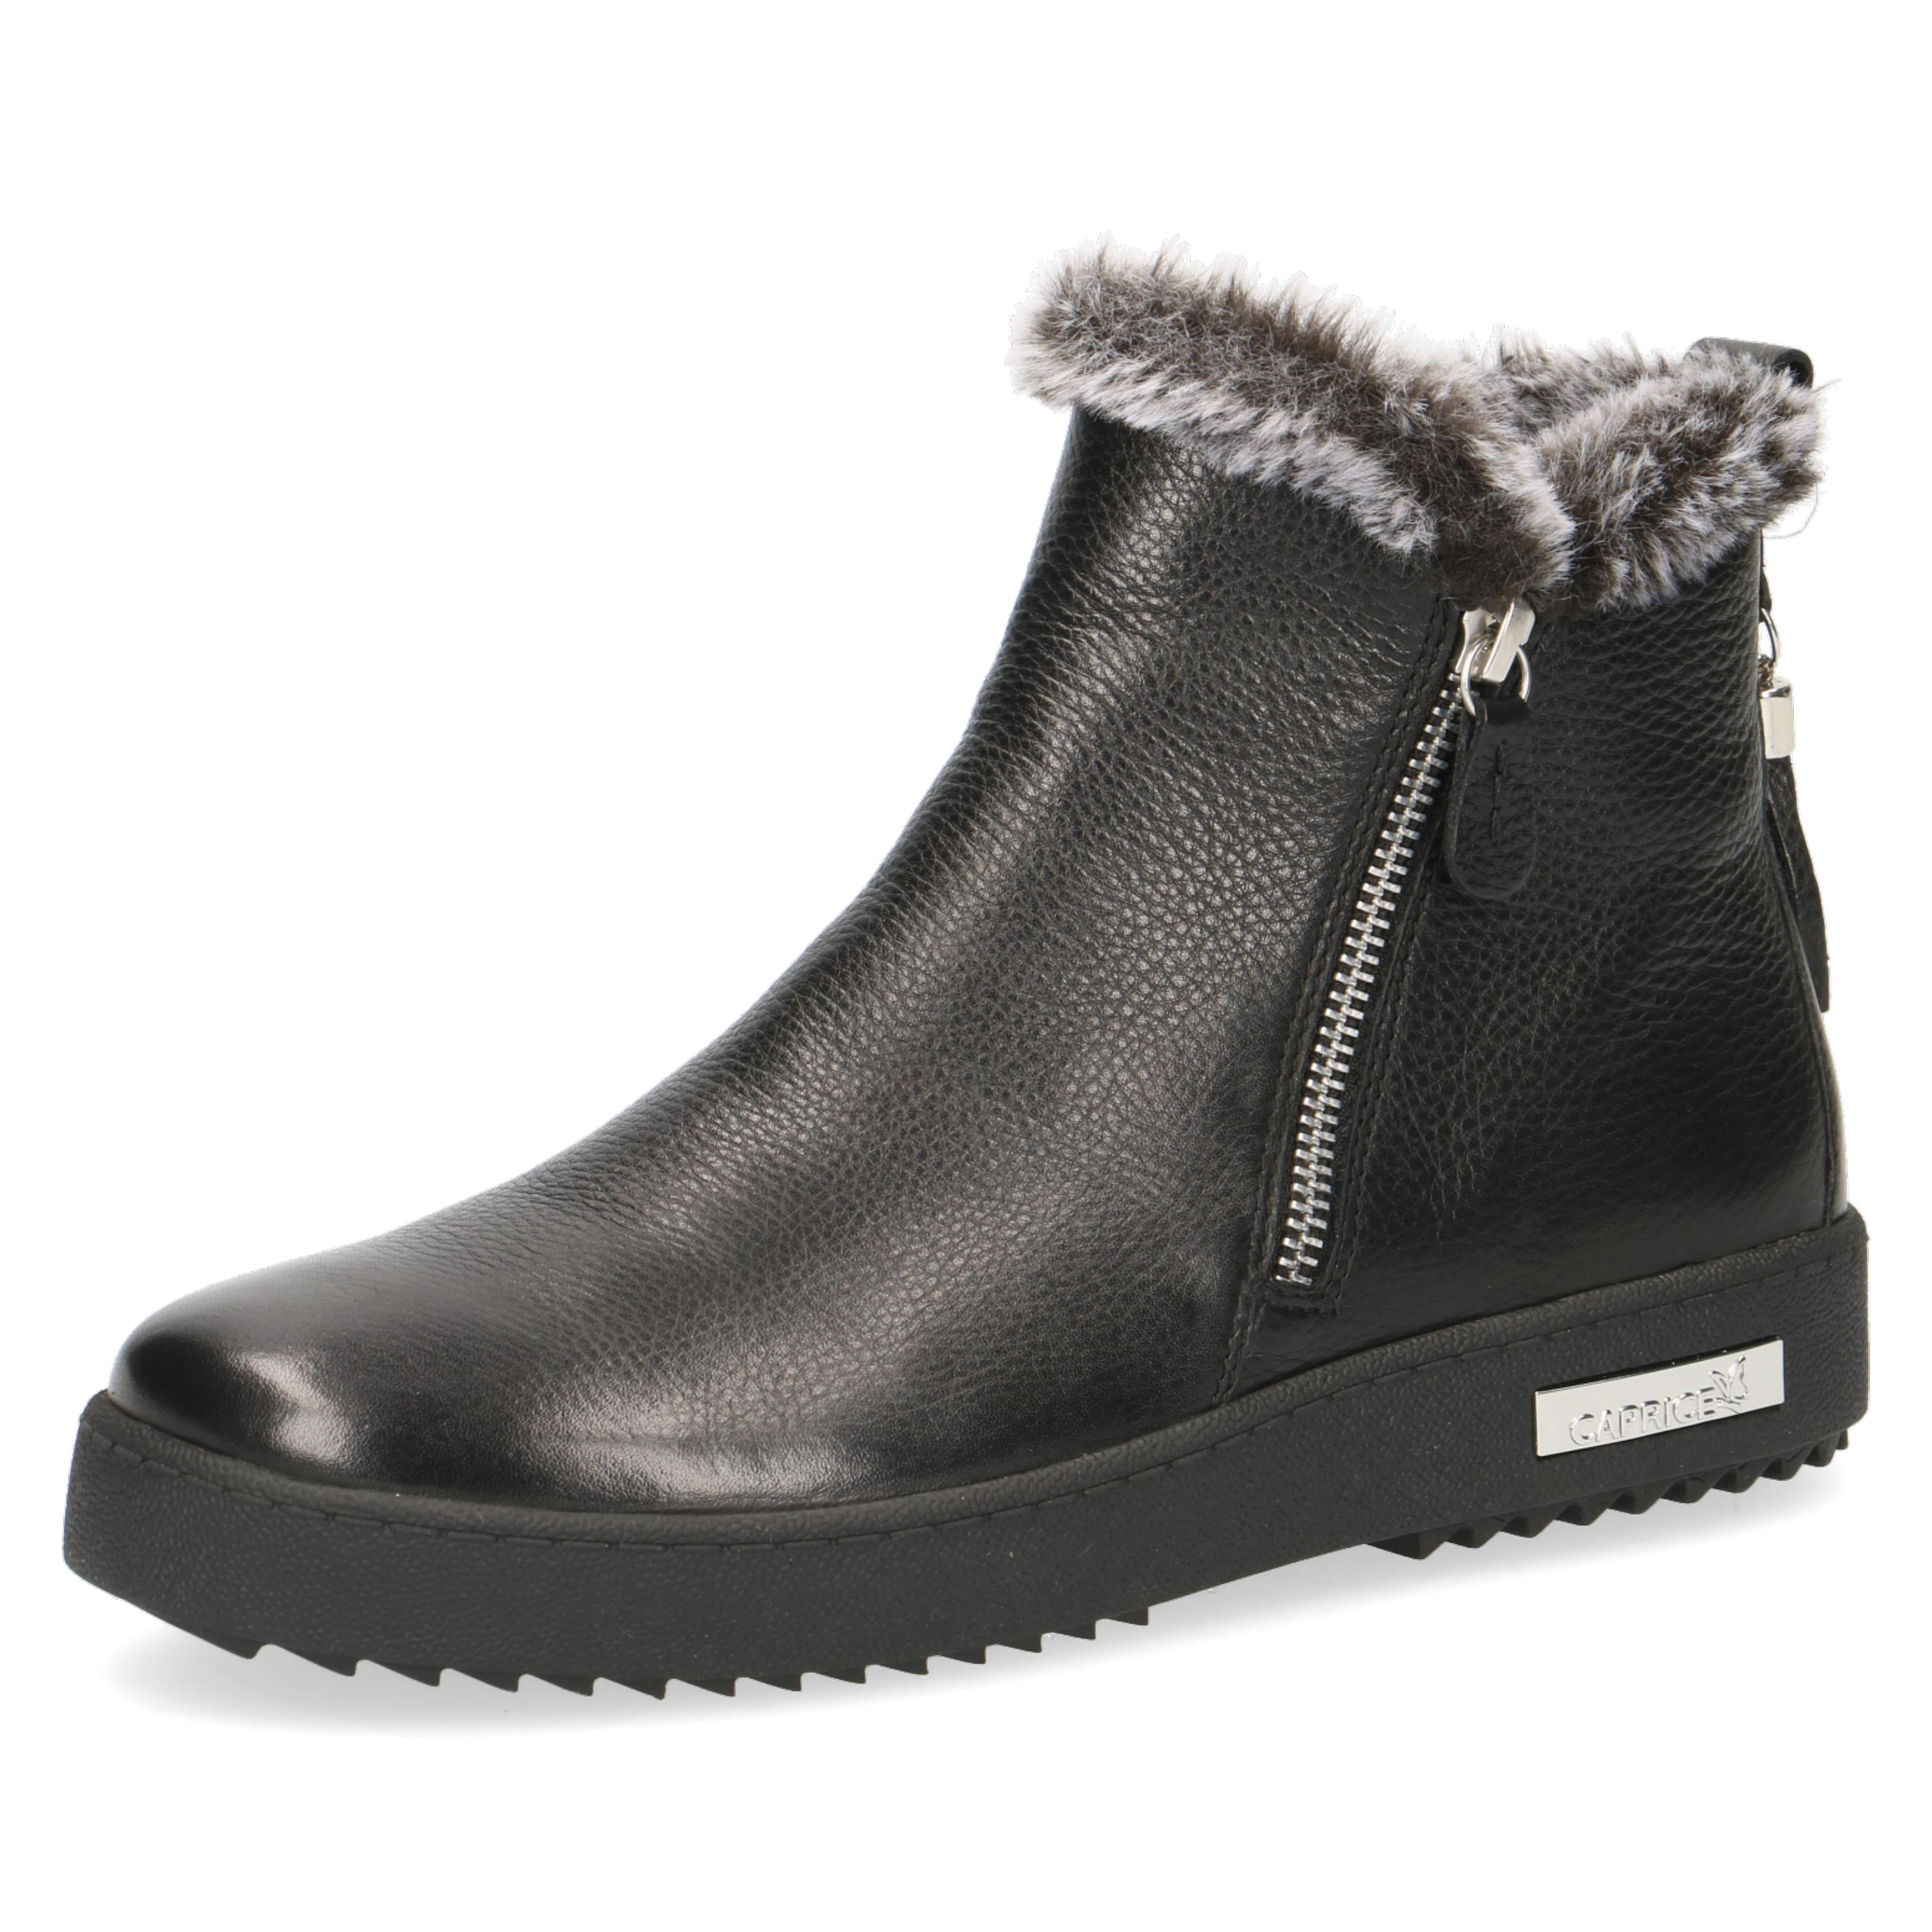 Caprice Black Leather Fur - Zip Detail Chunky Ankle Boot